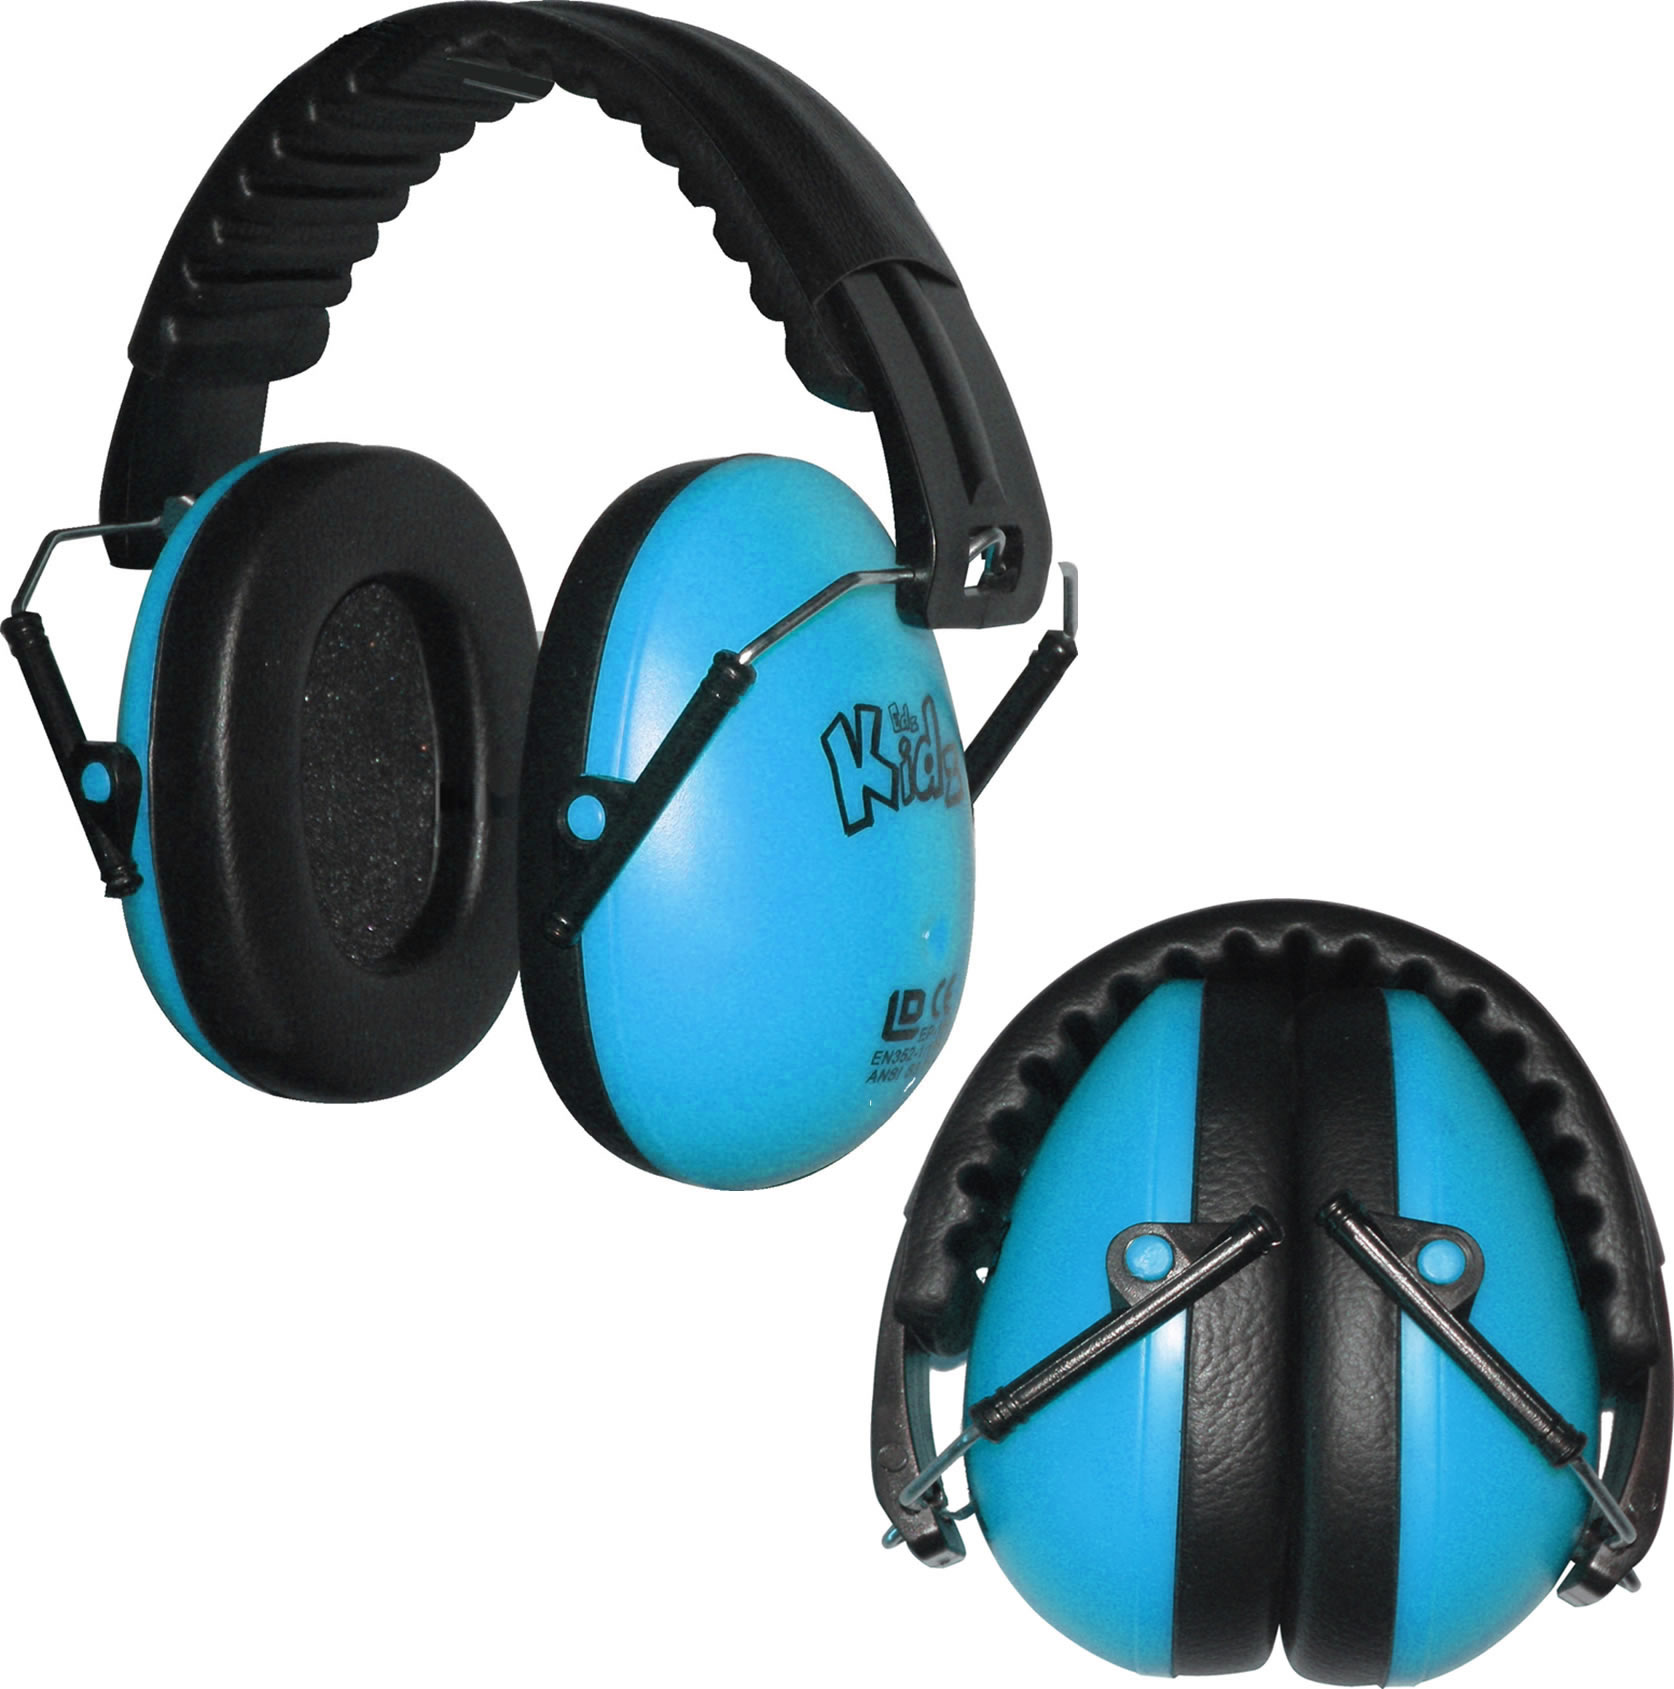 Ear Muffs Blue